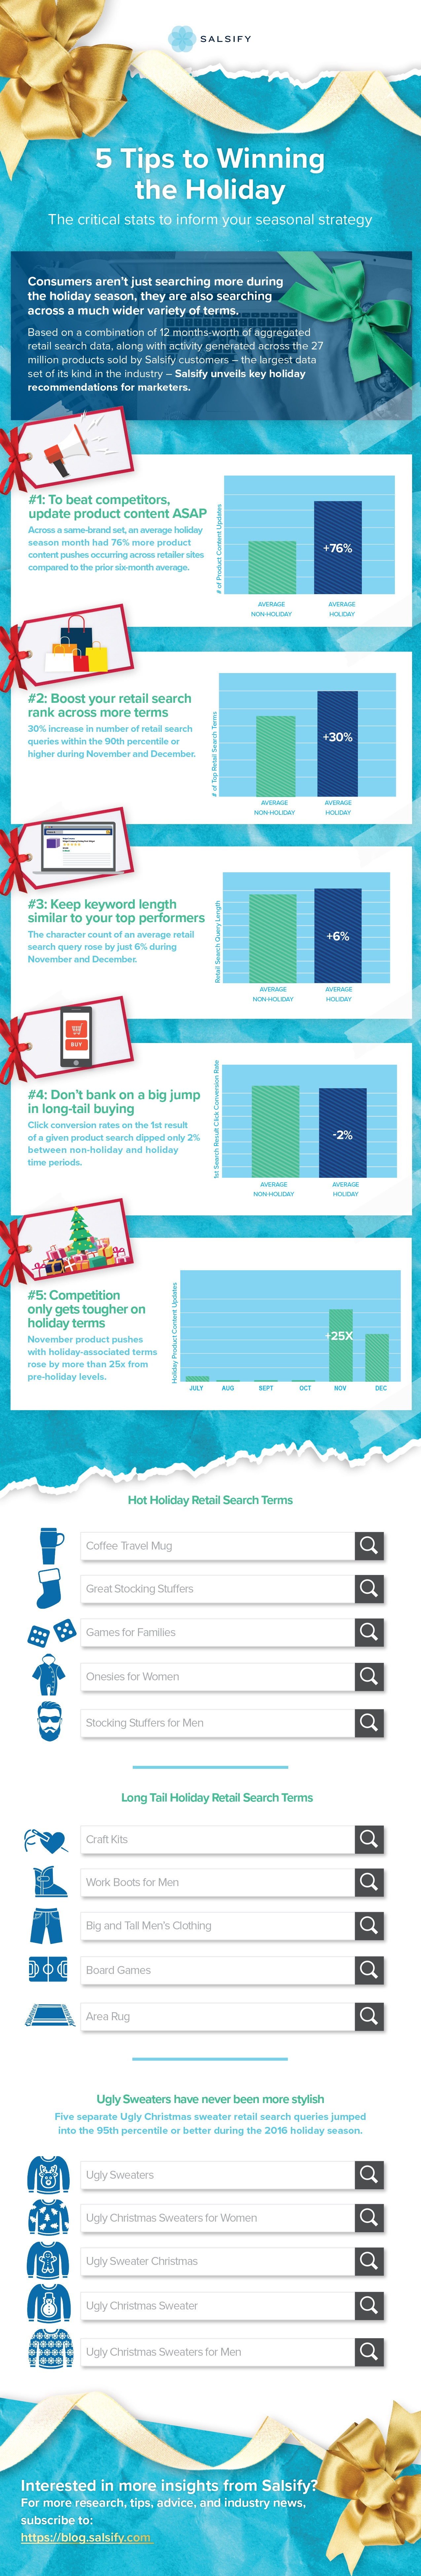 Salsify_Holiday_Keywords_Infographic_Final.jpg